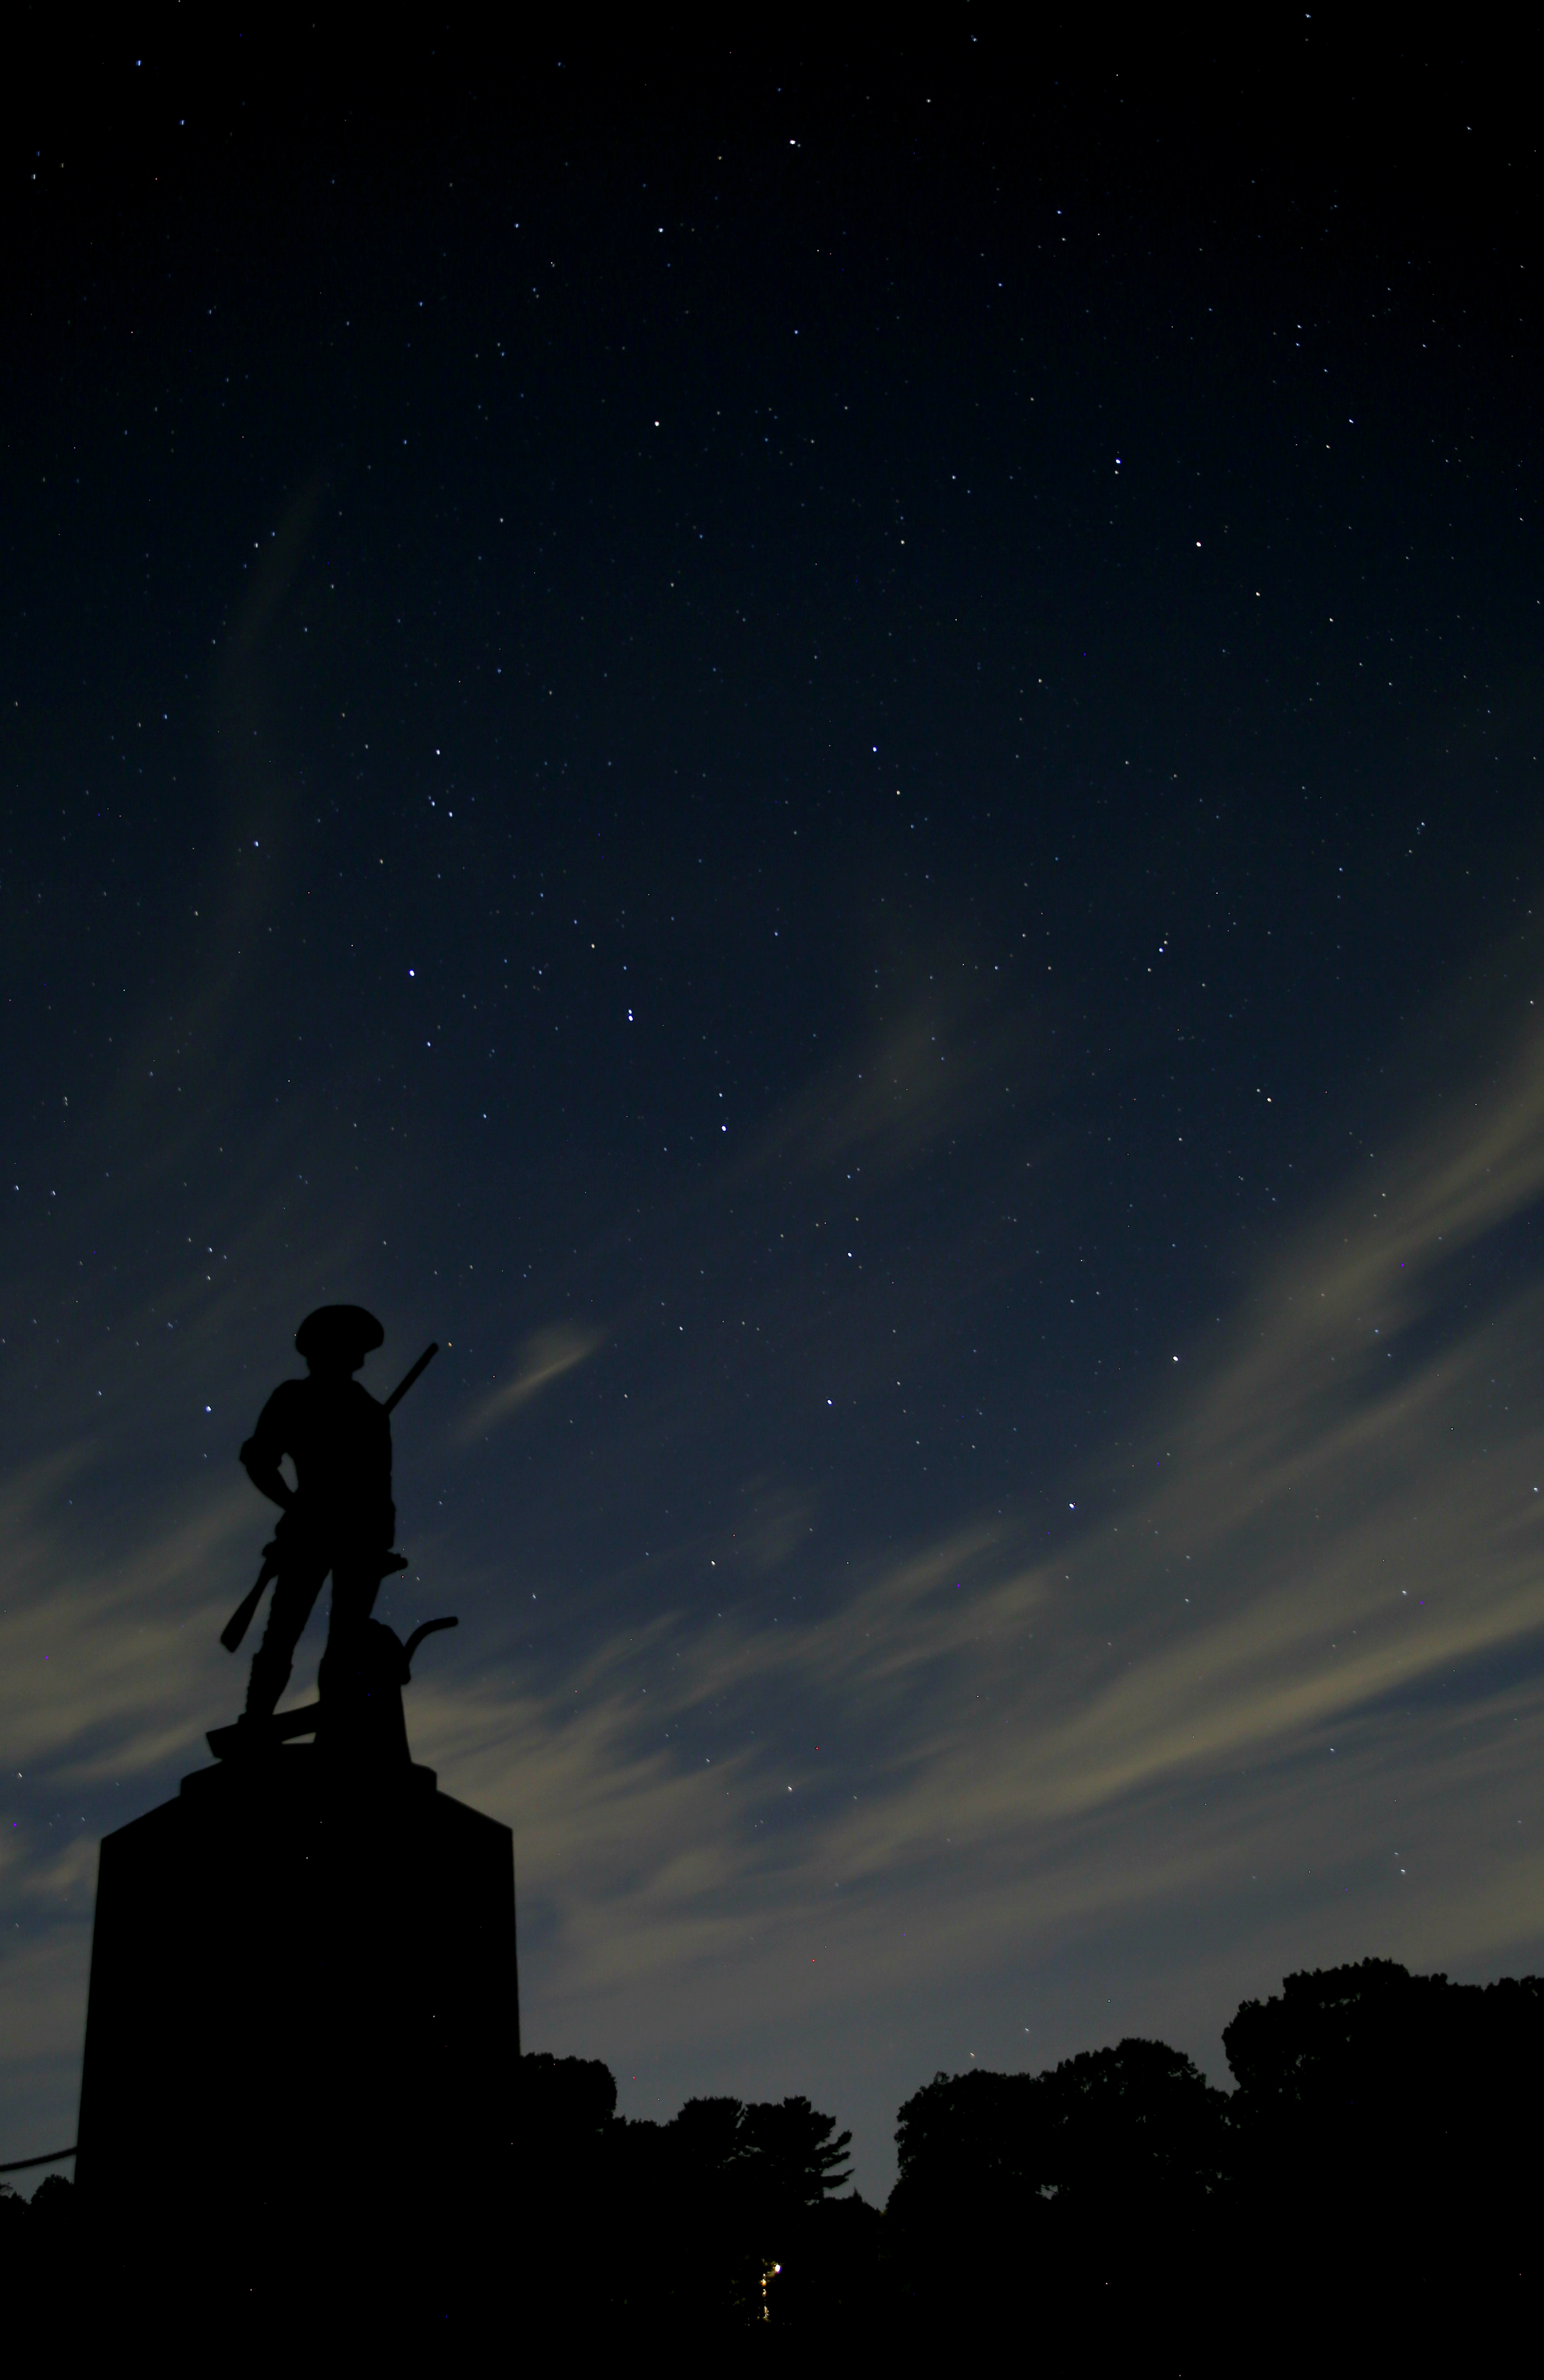 (Courtesy photo from Kristin Vinduska): Kristin Vinduska, a ranger at Minute Man National Historical Park in Massachusetts, shows off the park's nighttime sky.